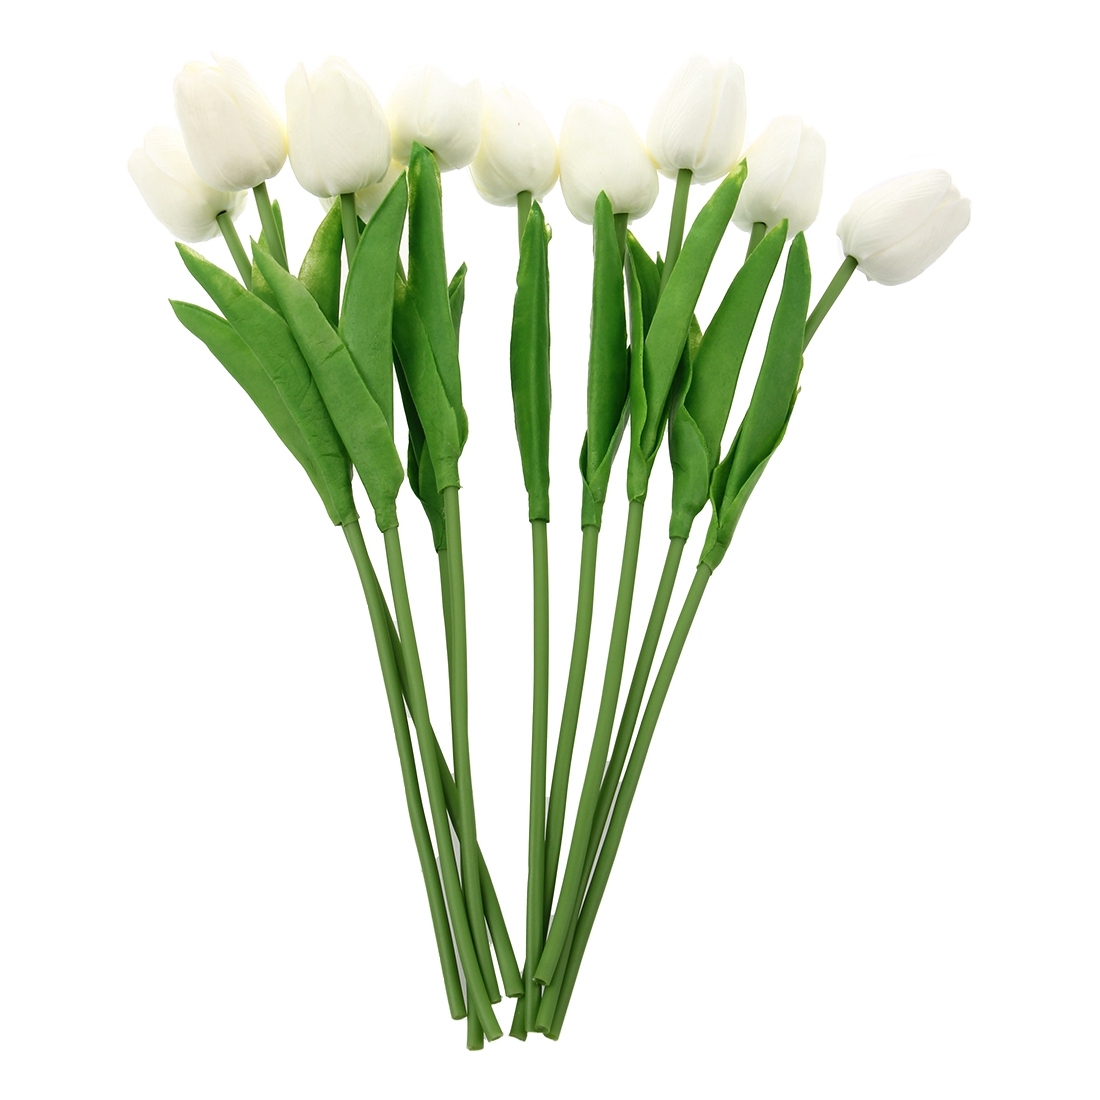 Compare prices on white tulip flowers online shoppingbuy low 10 pcs white tulip flower latex real touch for wedding bouquet kc456china dhlflorist Image collections